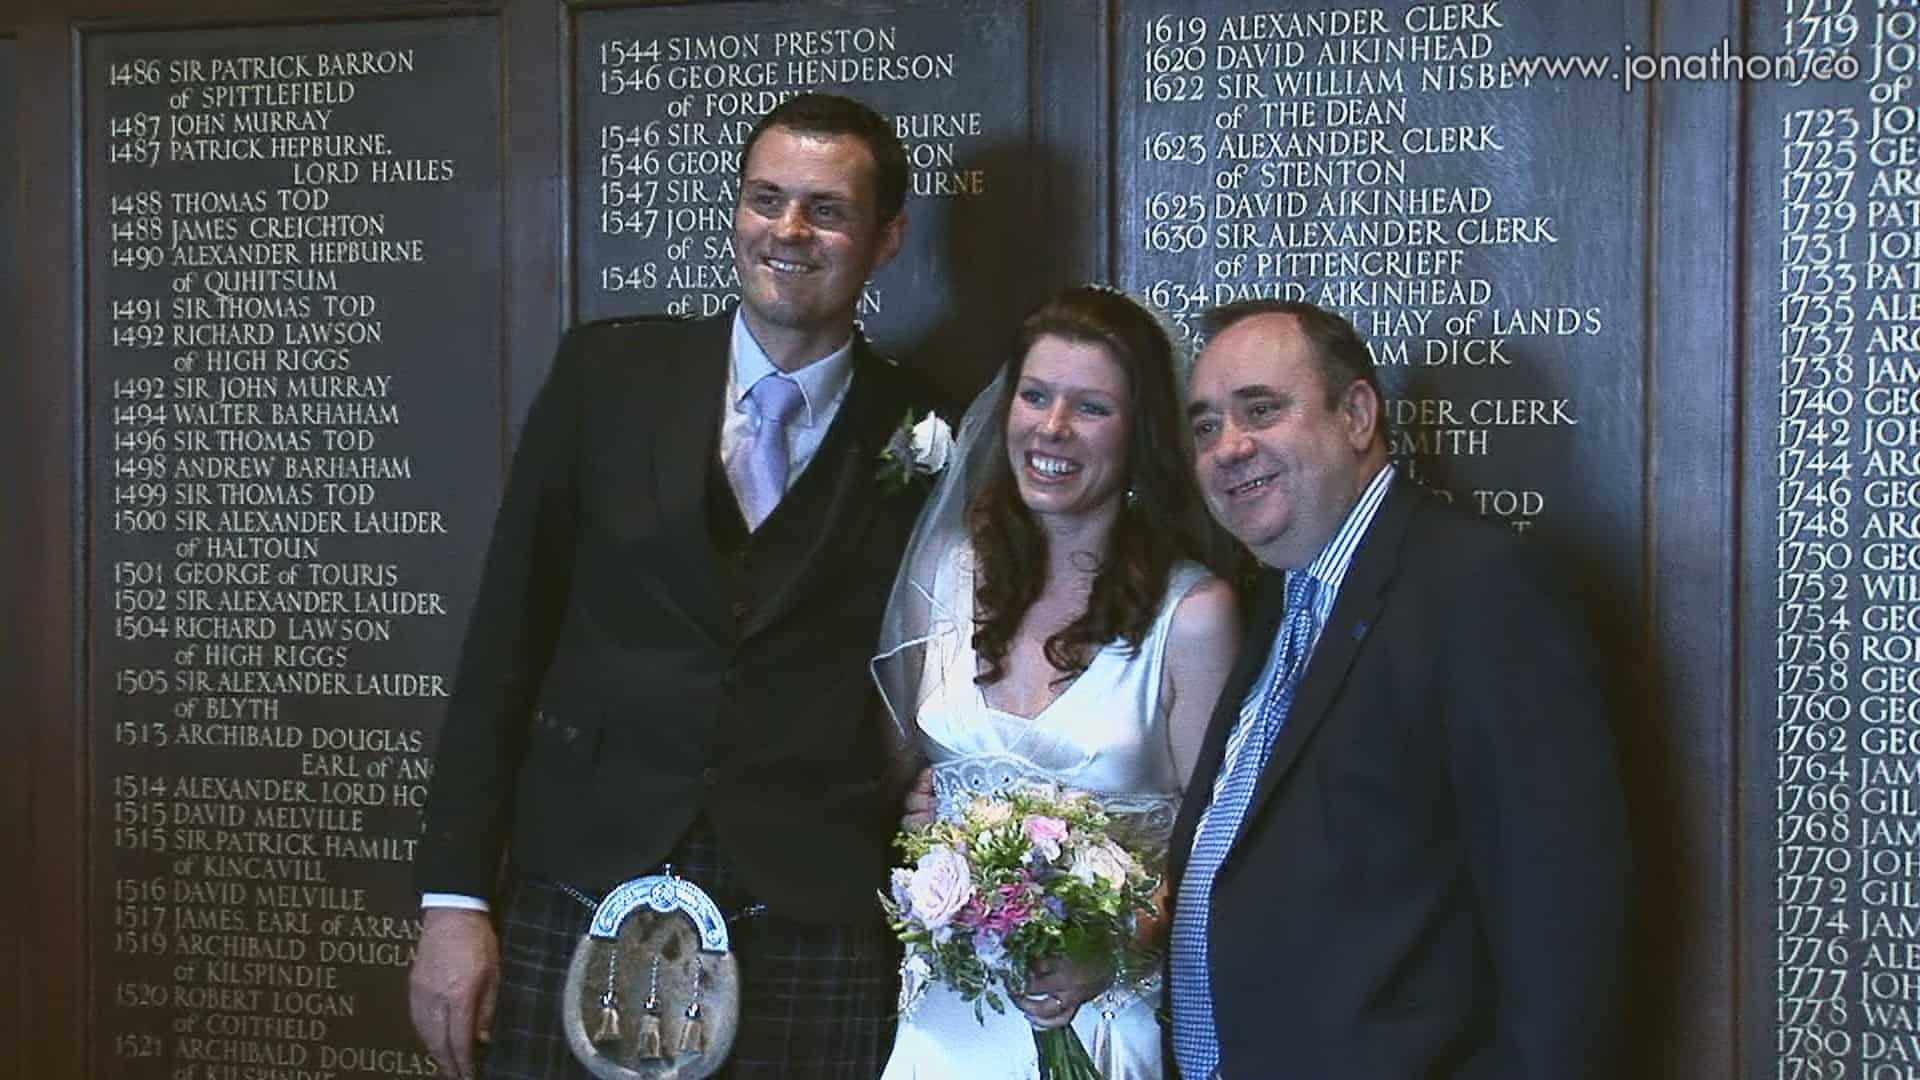 Alex Salmond wedding visit